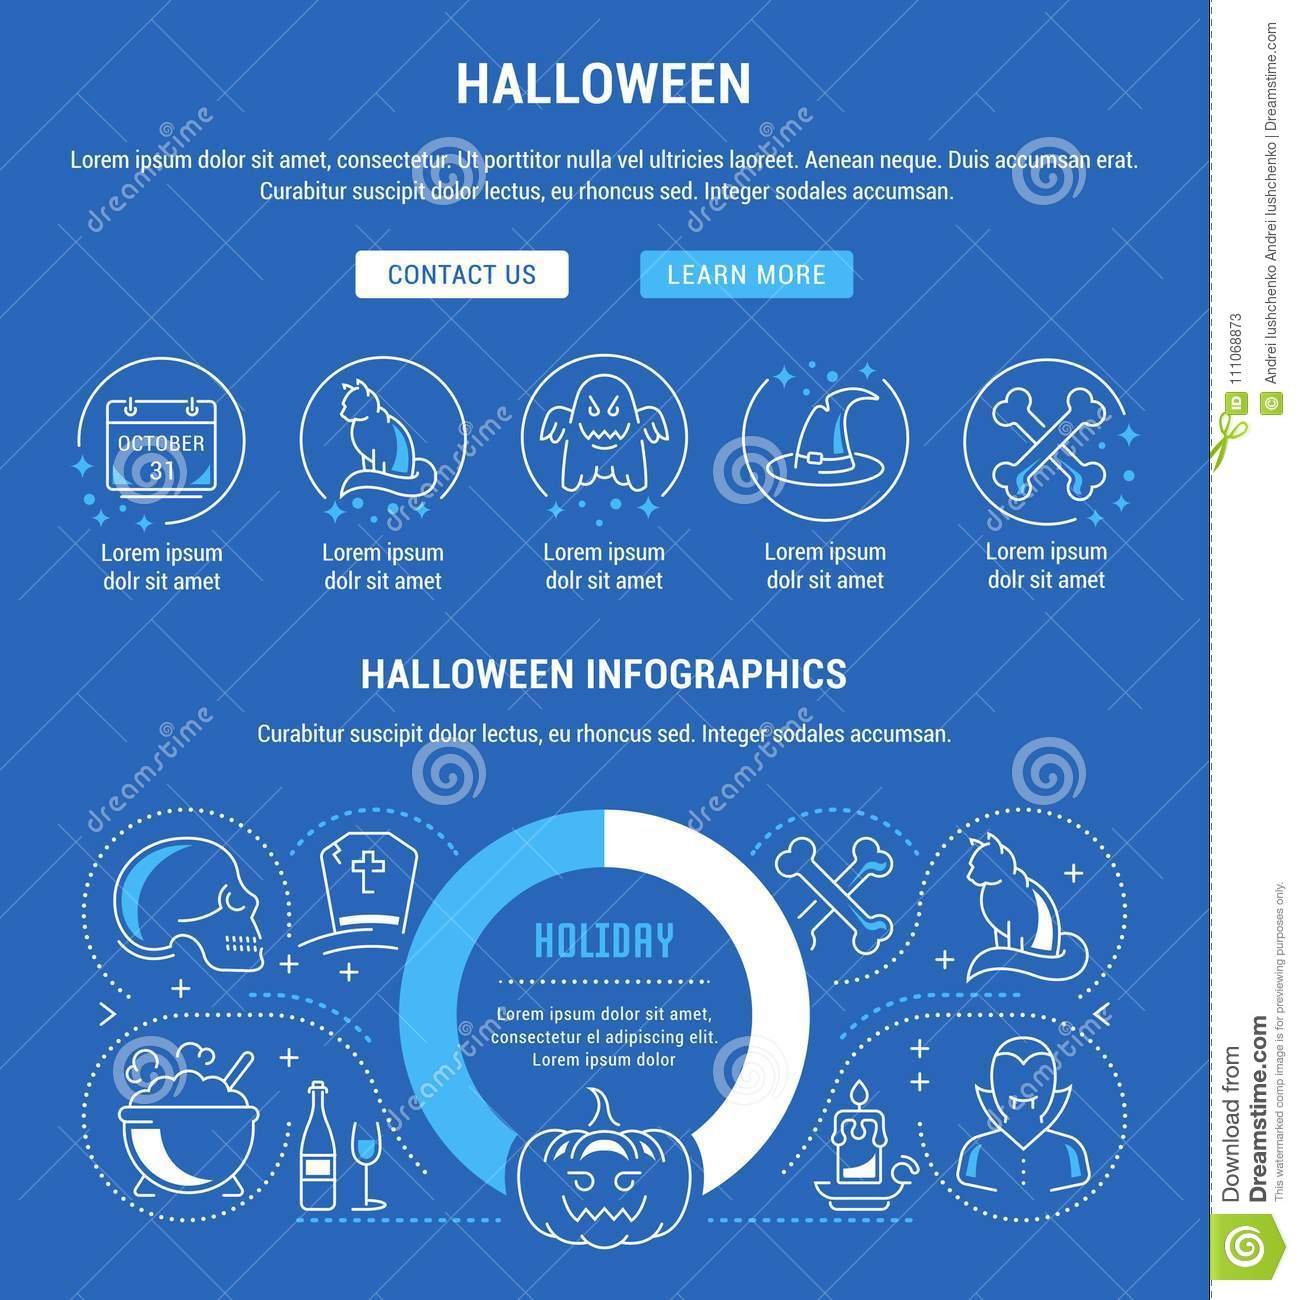 website banner and landing page of halloween stock illustration